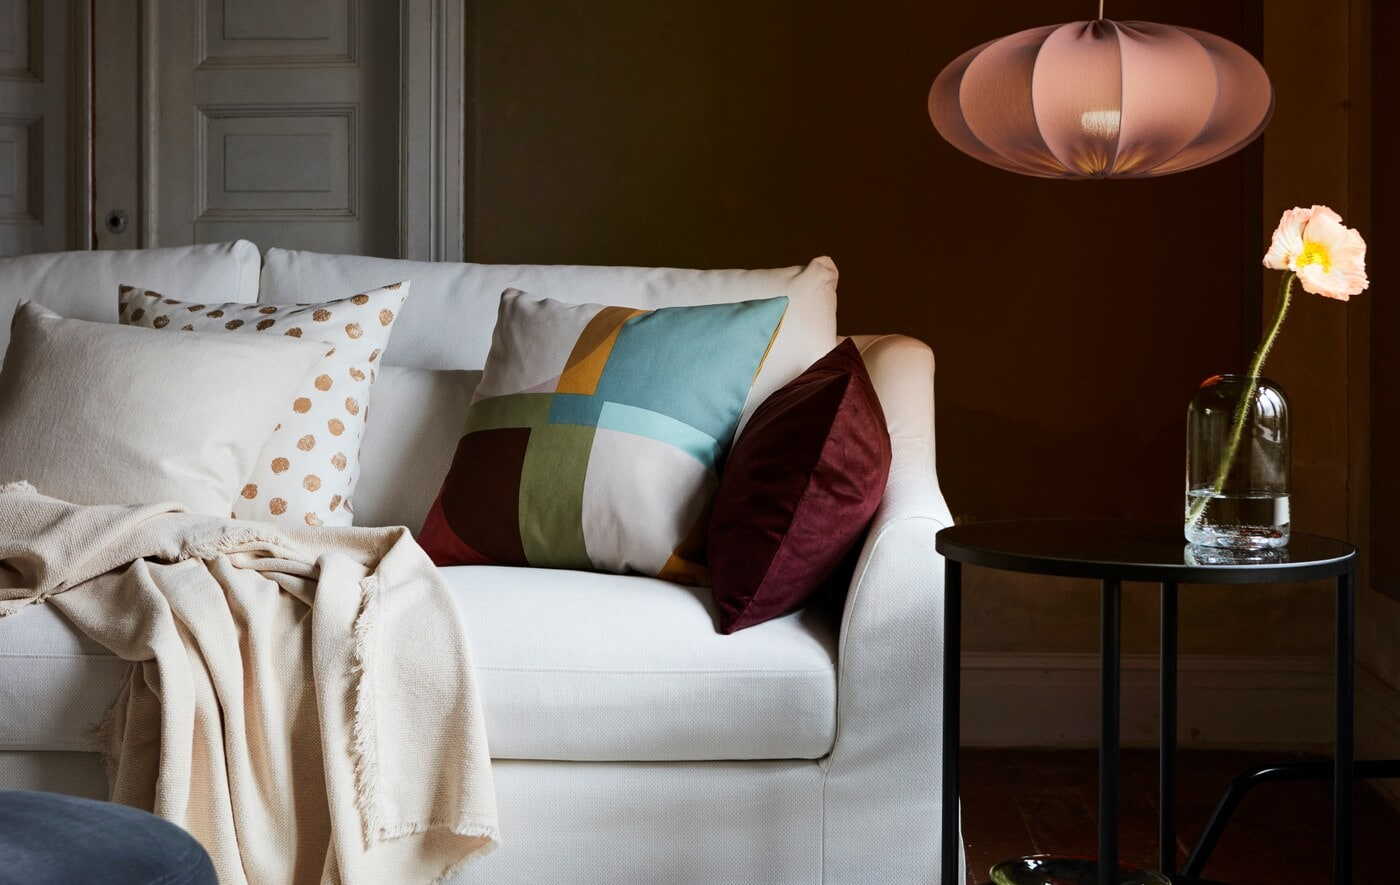 A white sofa in a living room with a mix of cushions and a throw. Next to it is a black side table and REGNSKUR lamp.